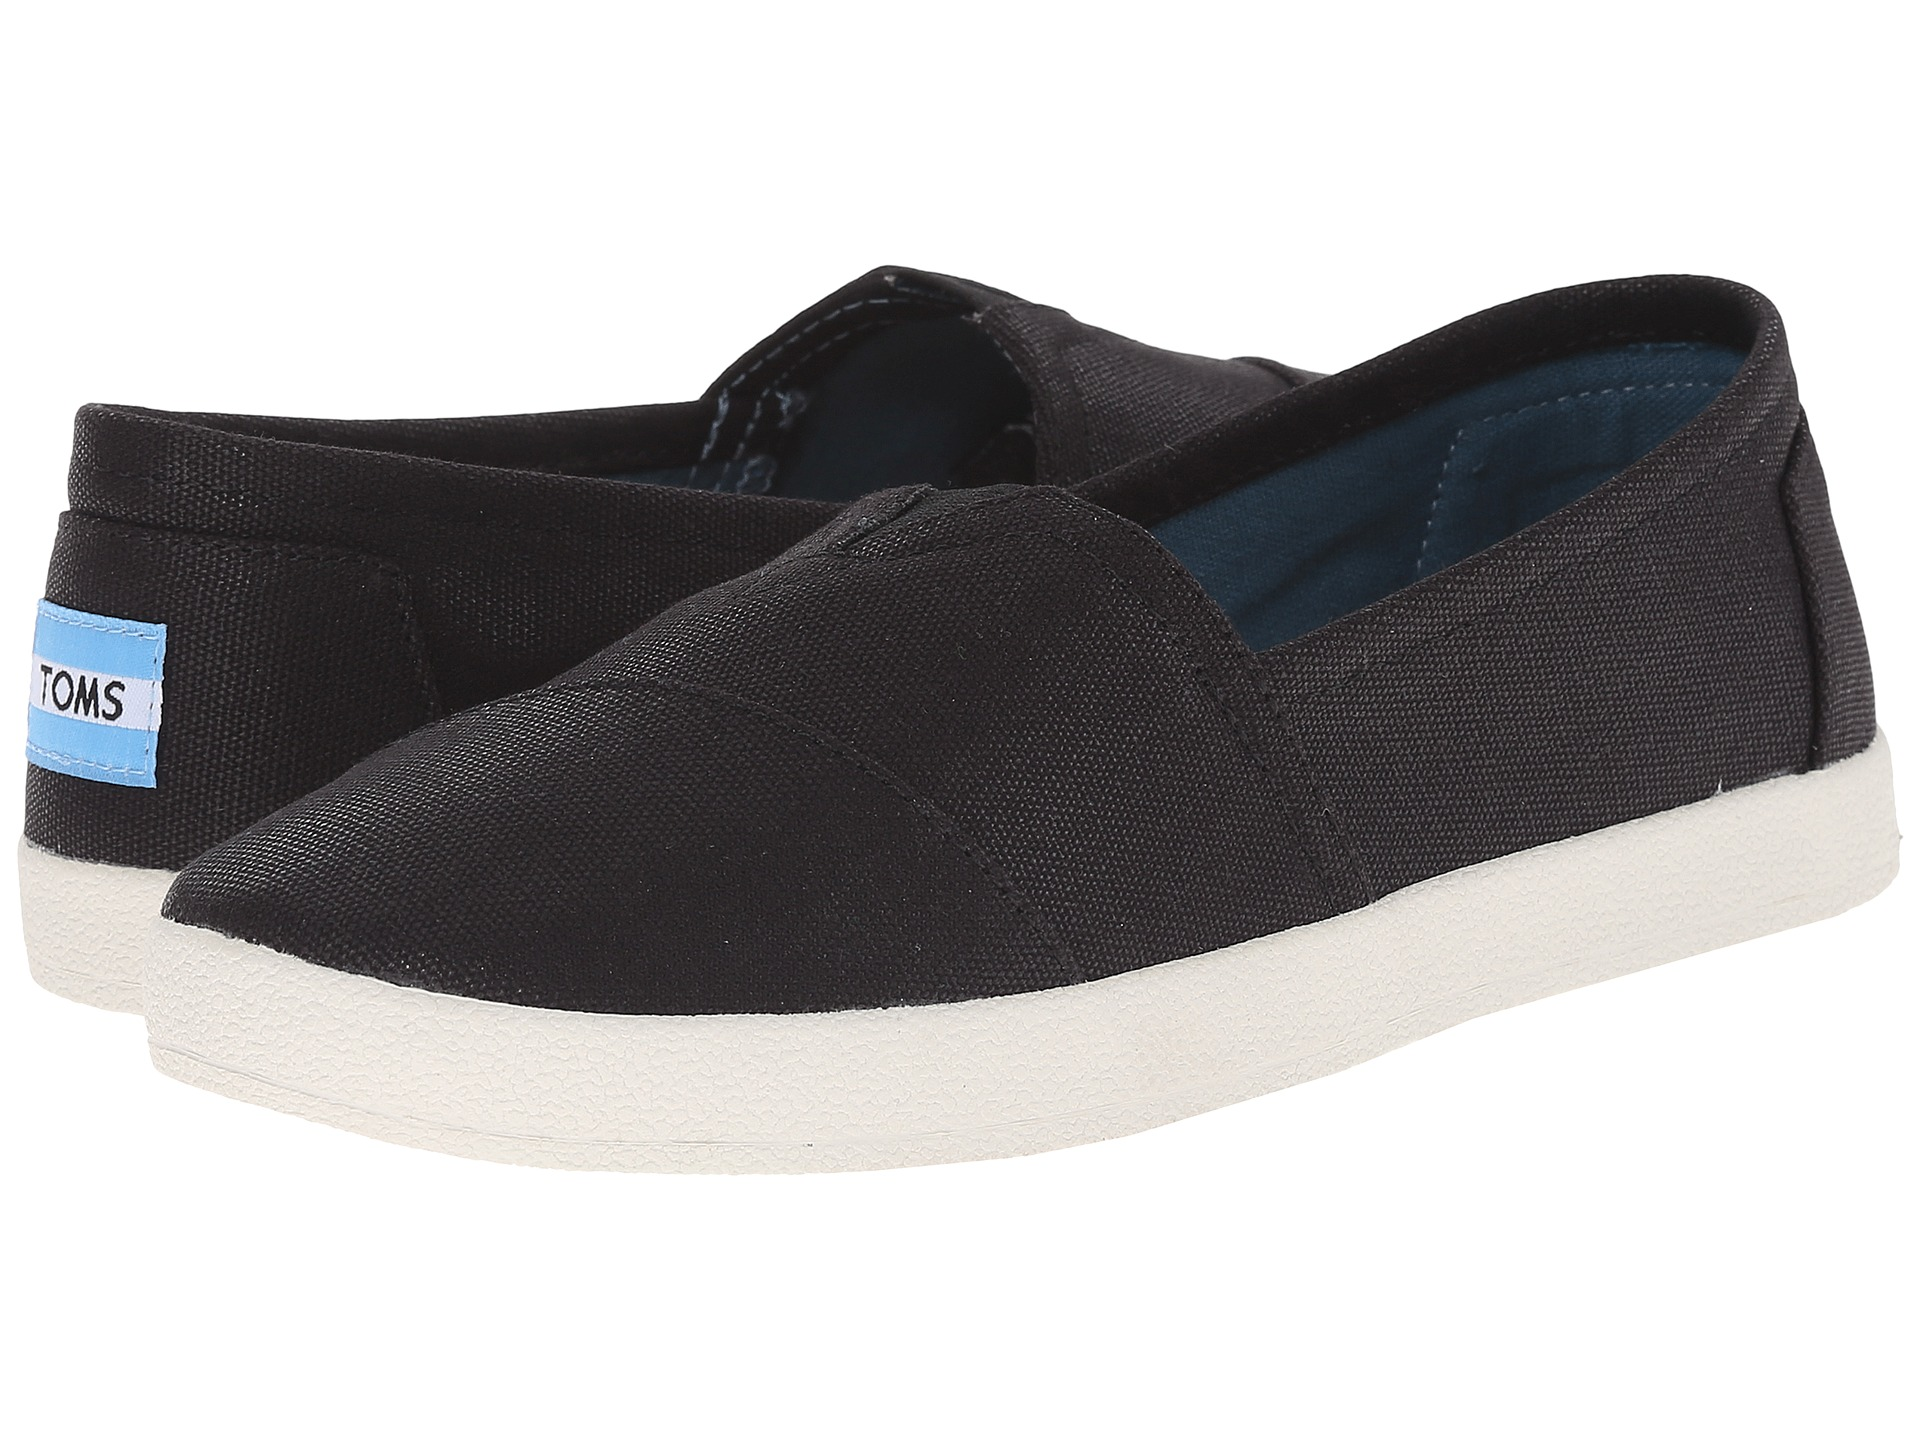 Toms Avalon Black Leather női cipő